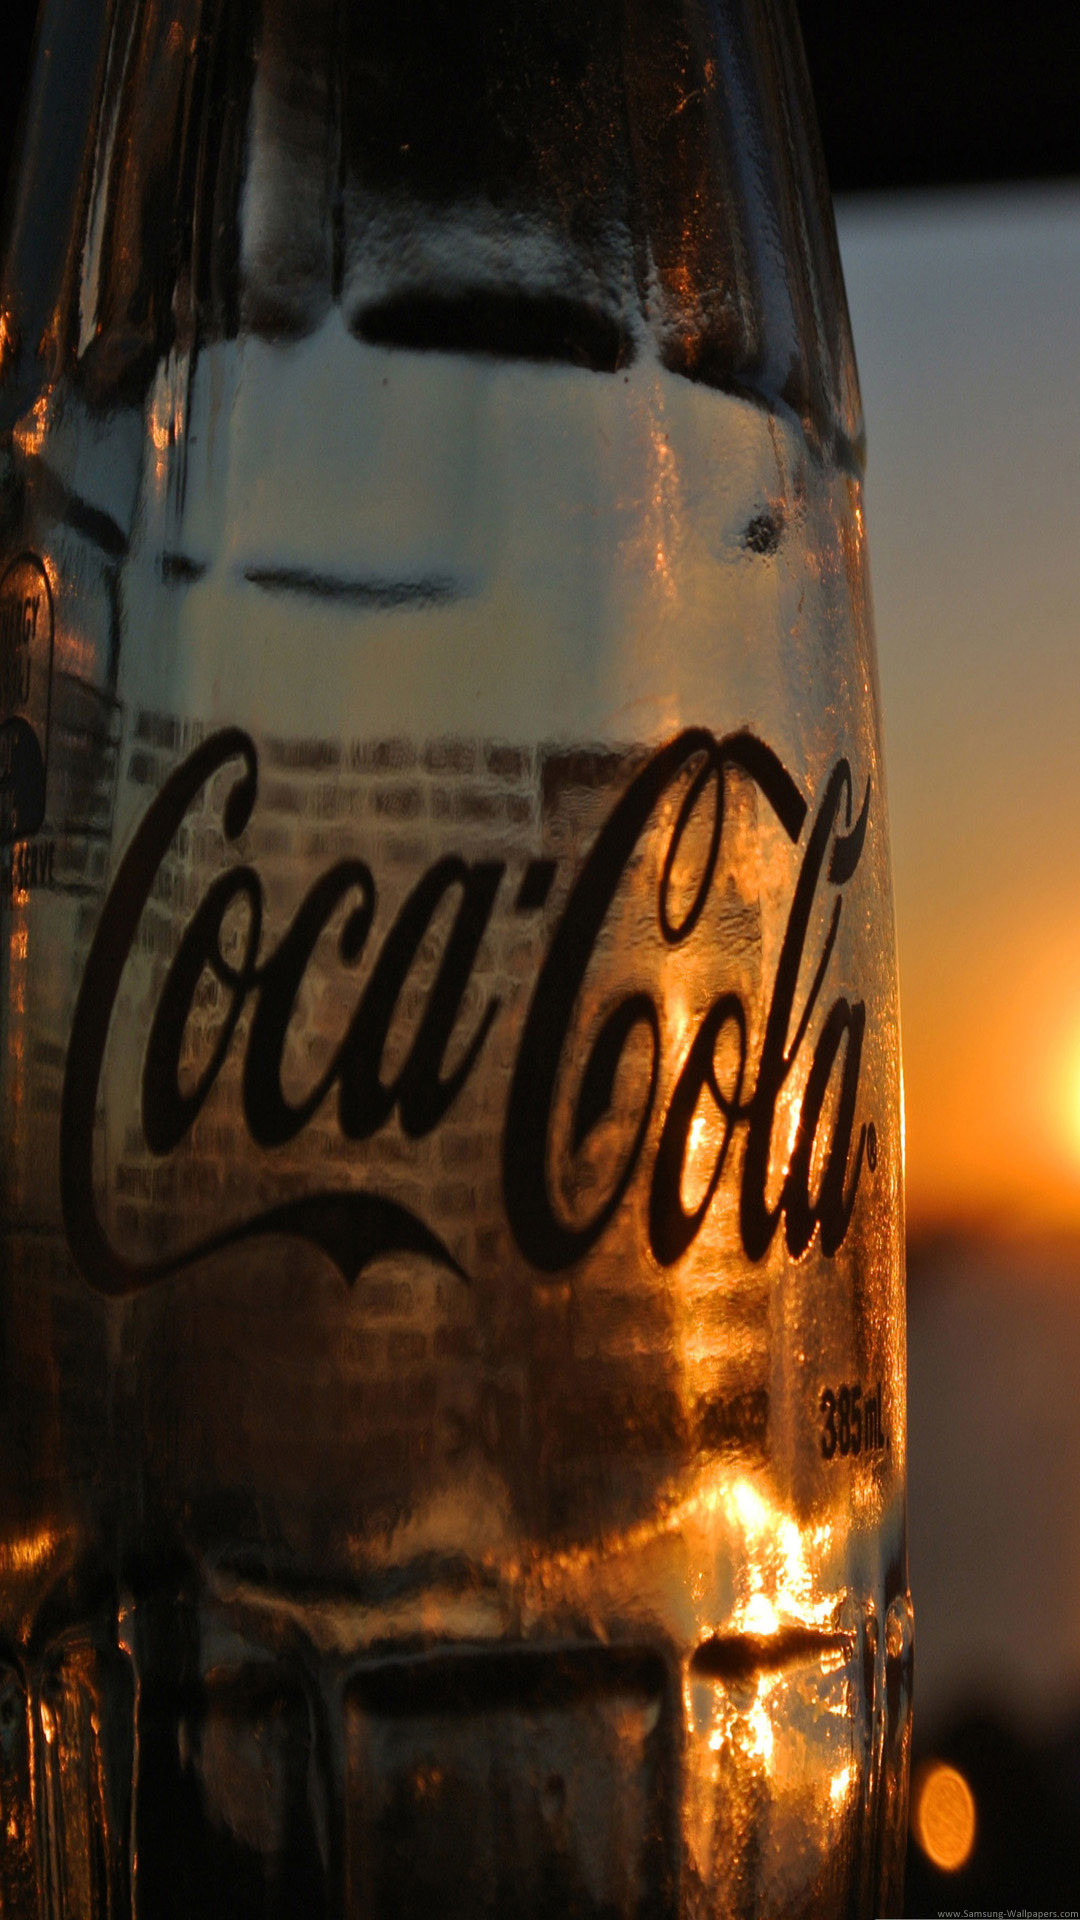 Coca Cola Sunset Lock Screen android wallpaper HD